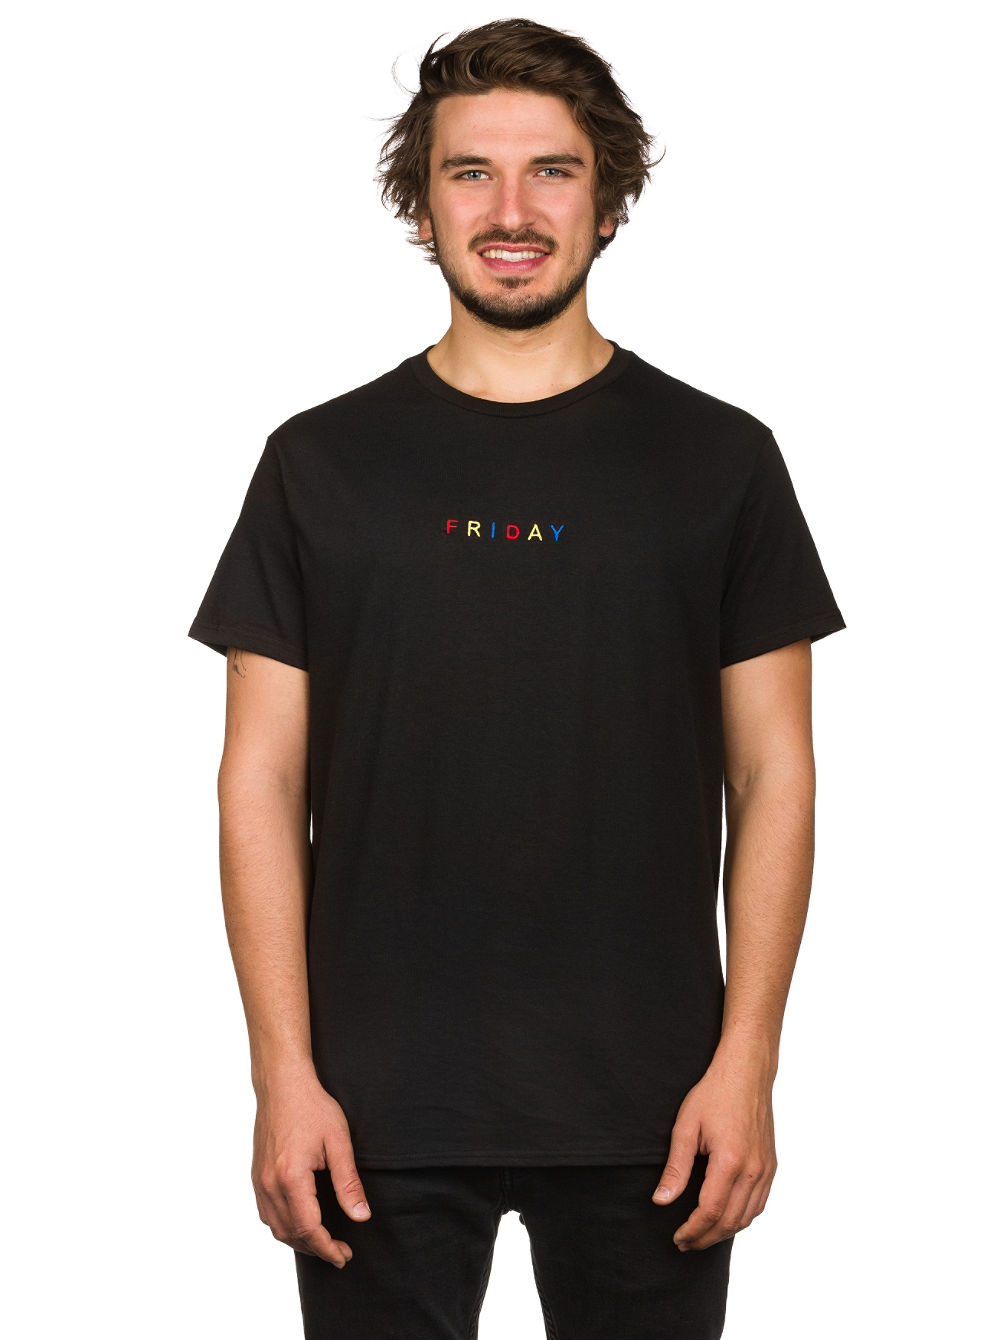 a-lab-friday-embroidery-t-shirt